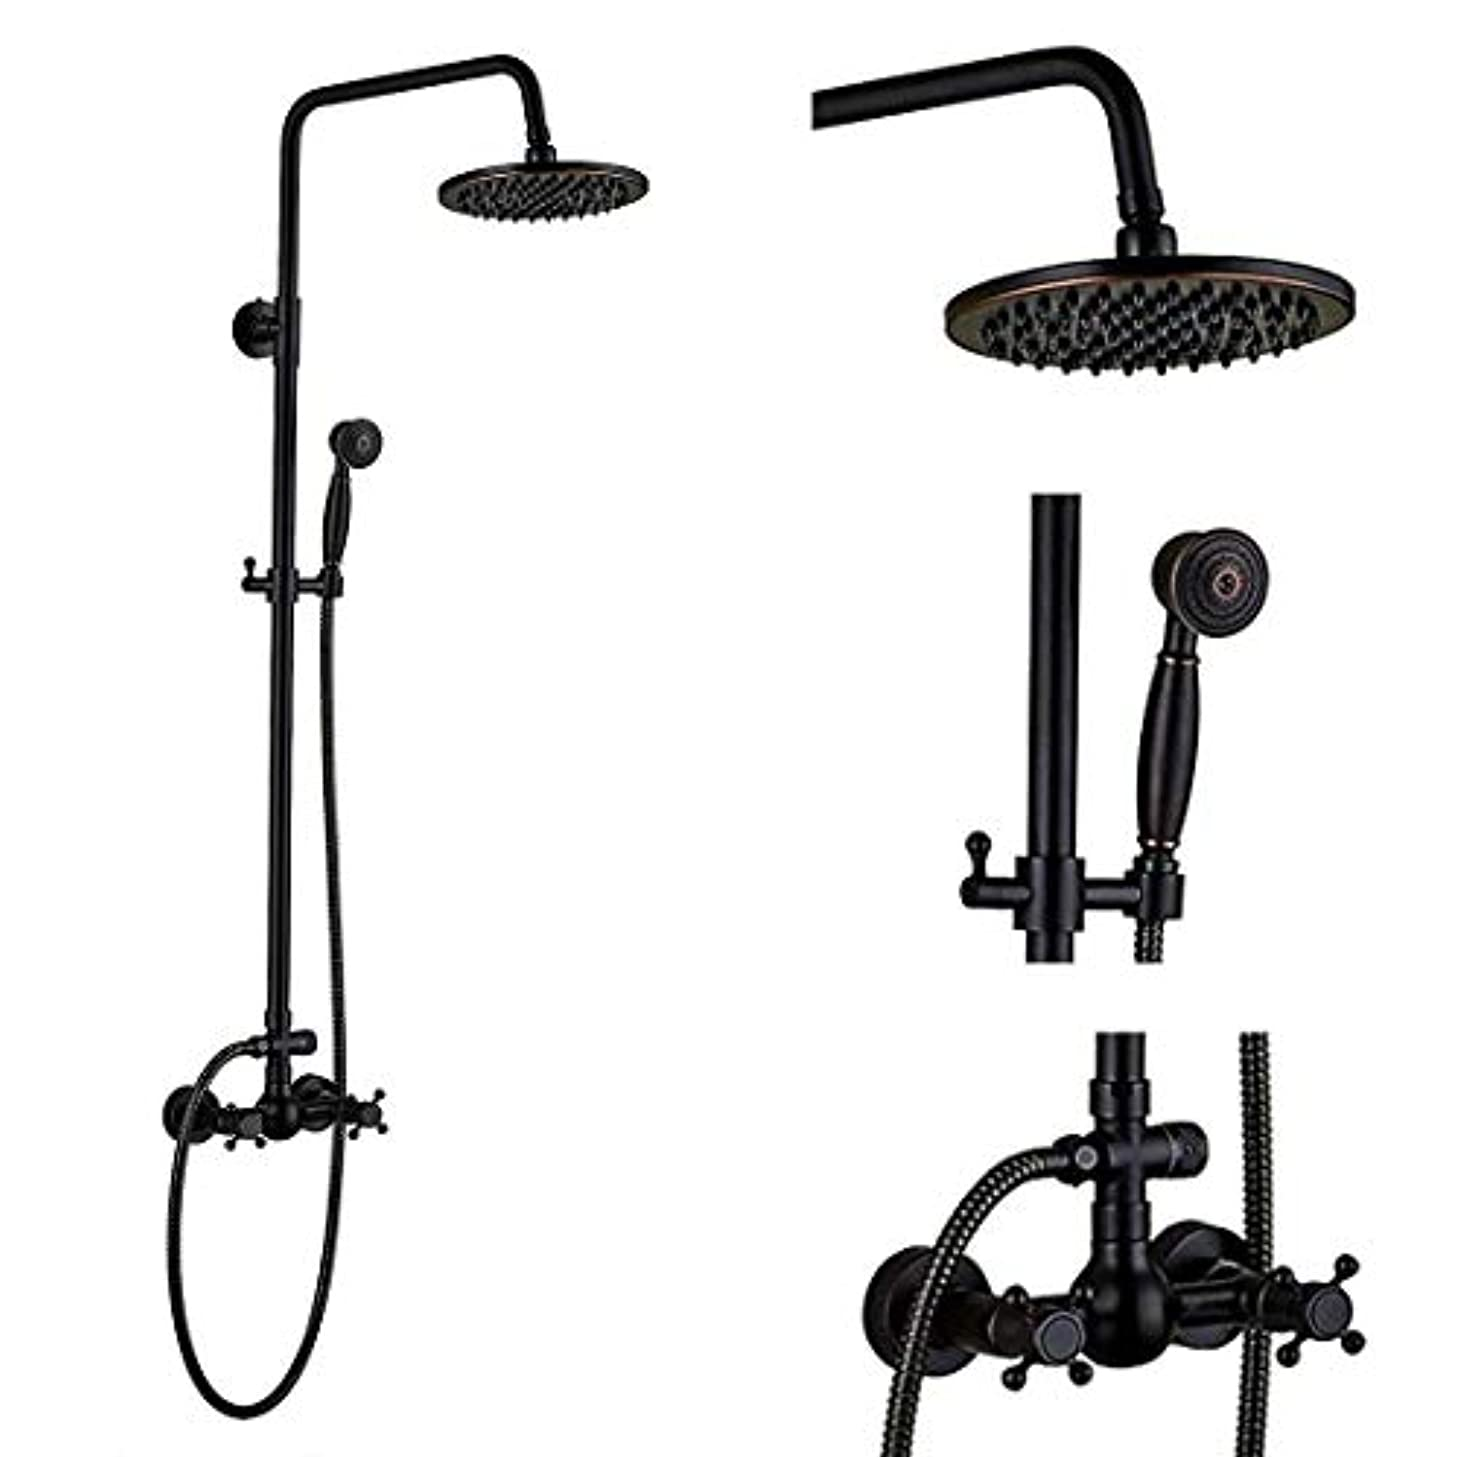 Oil Rubbed Bronze Rain Shower System set 2 Knobs Mixing 8-inch Rainfall Shower Head with Handheld Spray Bathroom Shower Faucet